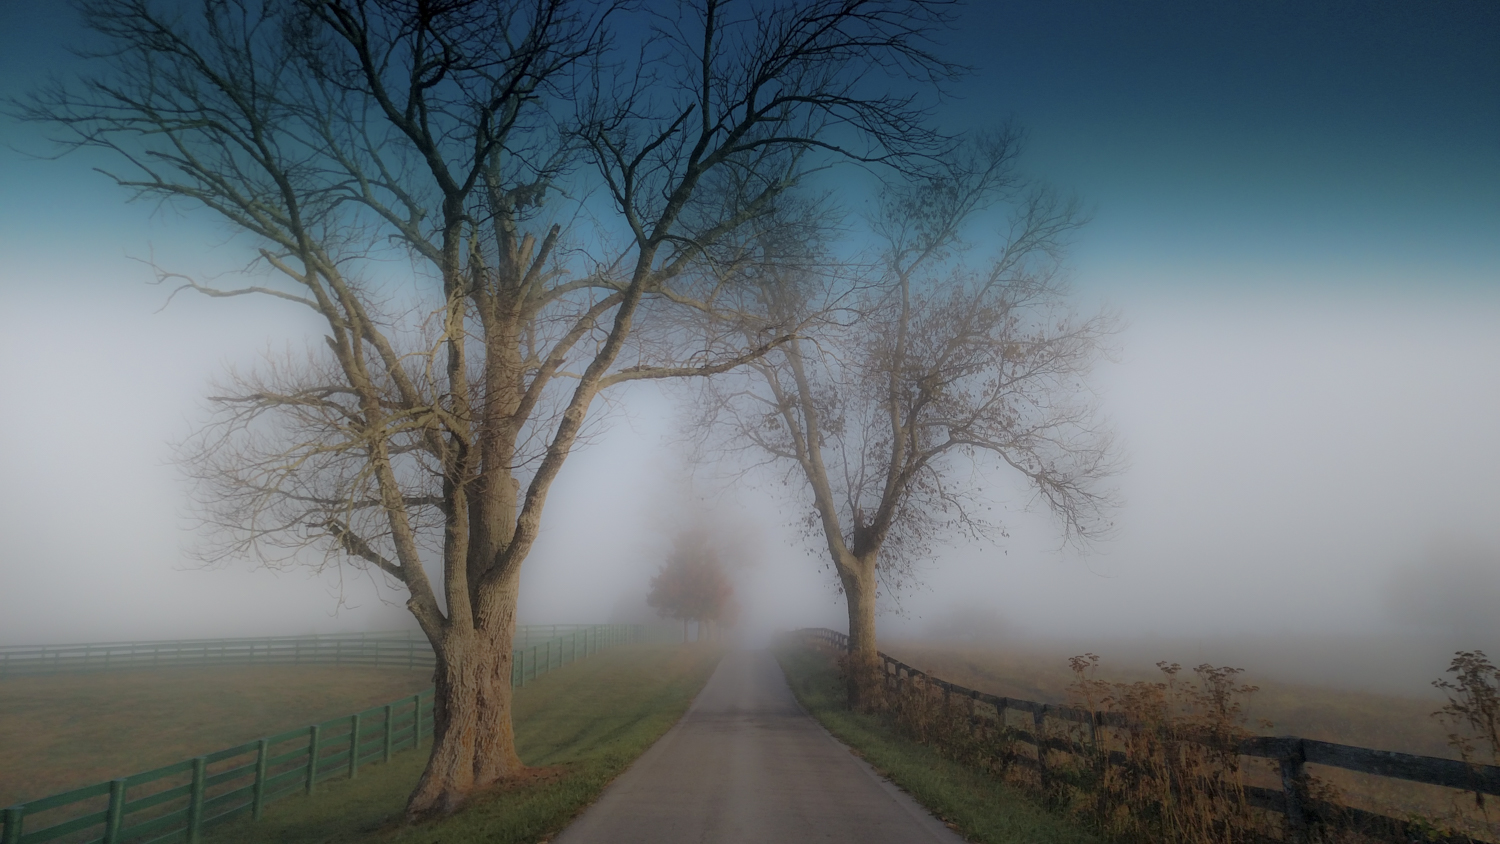 The road leading to  Sunwise Farm and Sanctuary , Kathleen and Greg's home and studio...